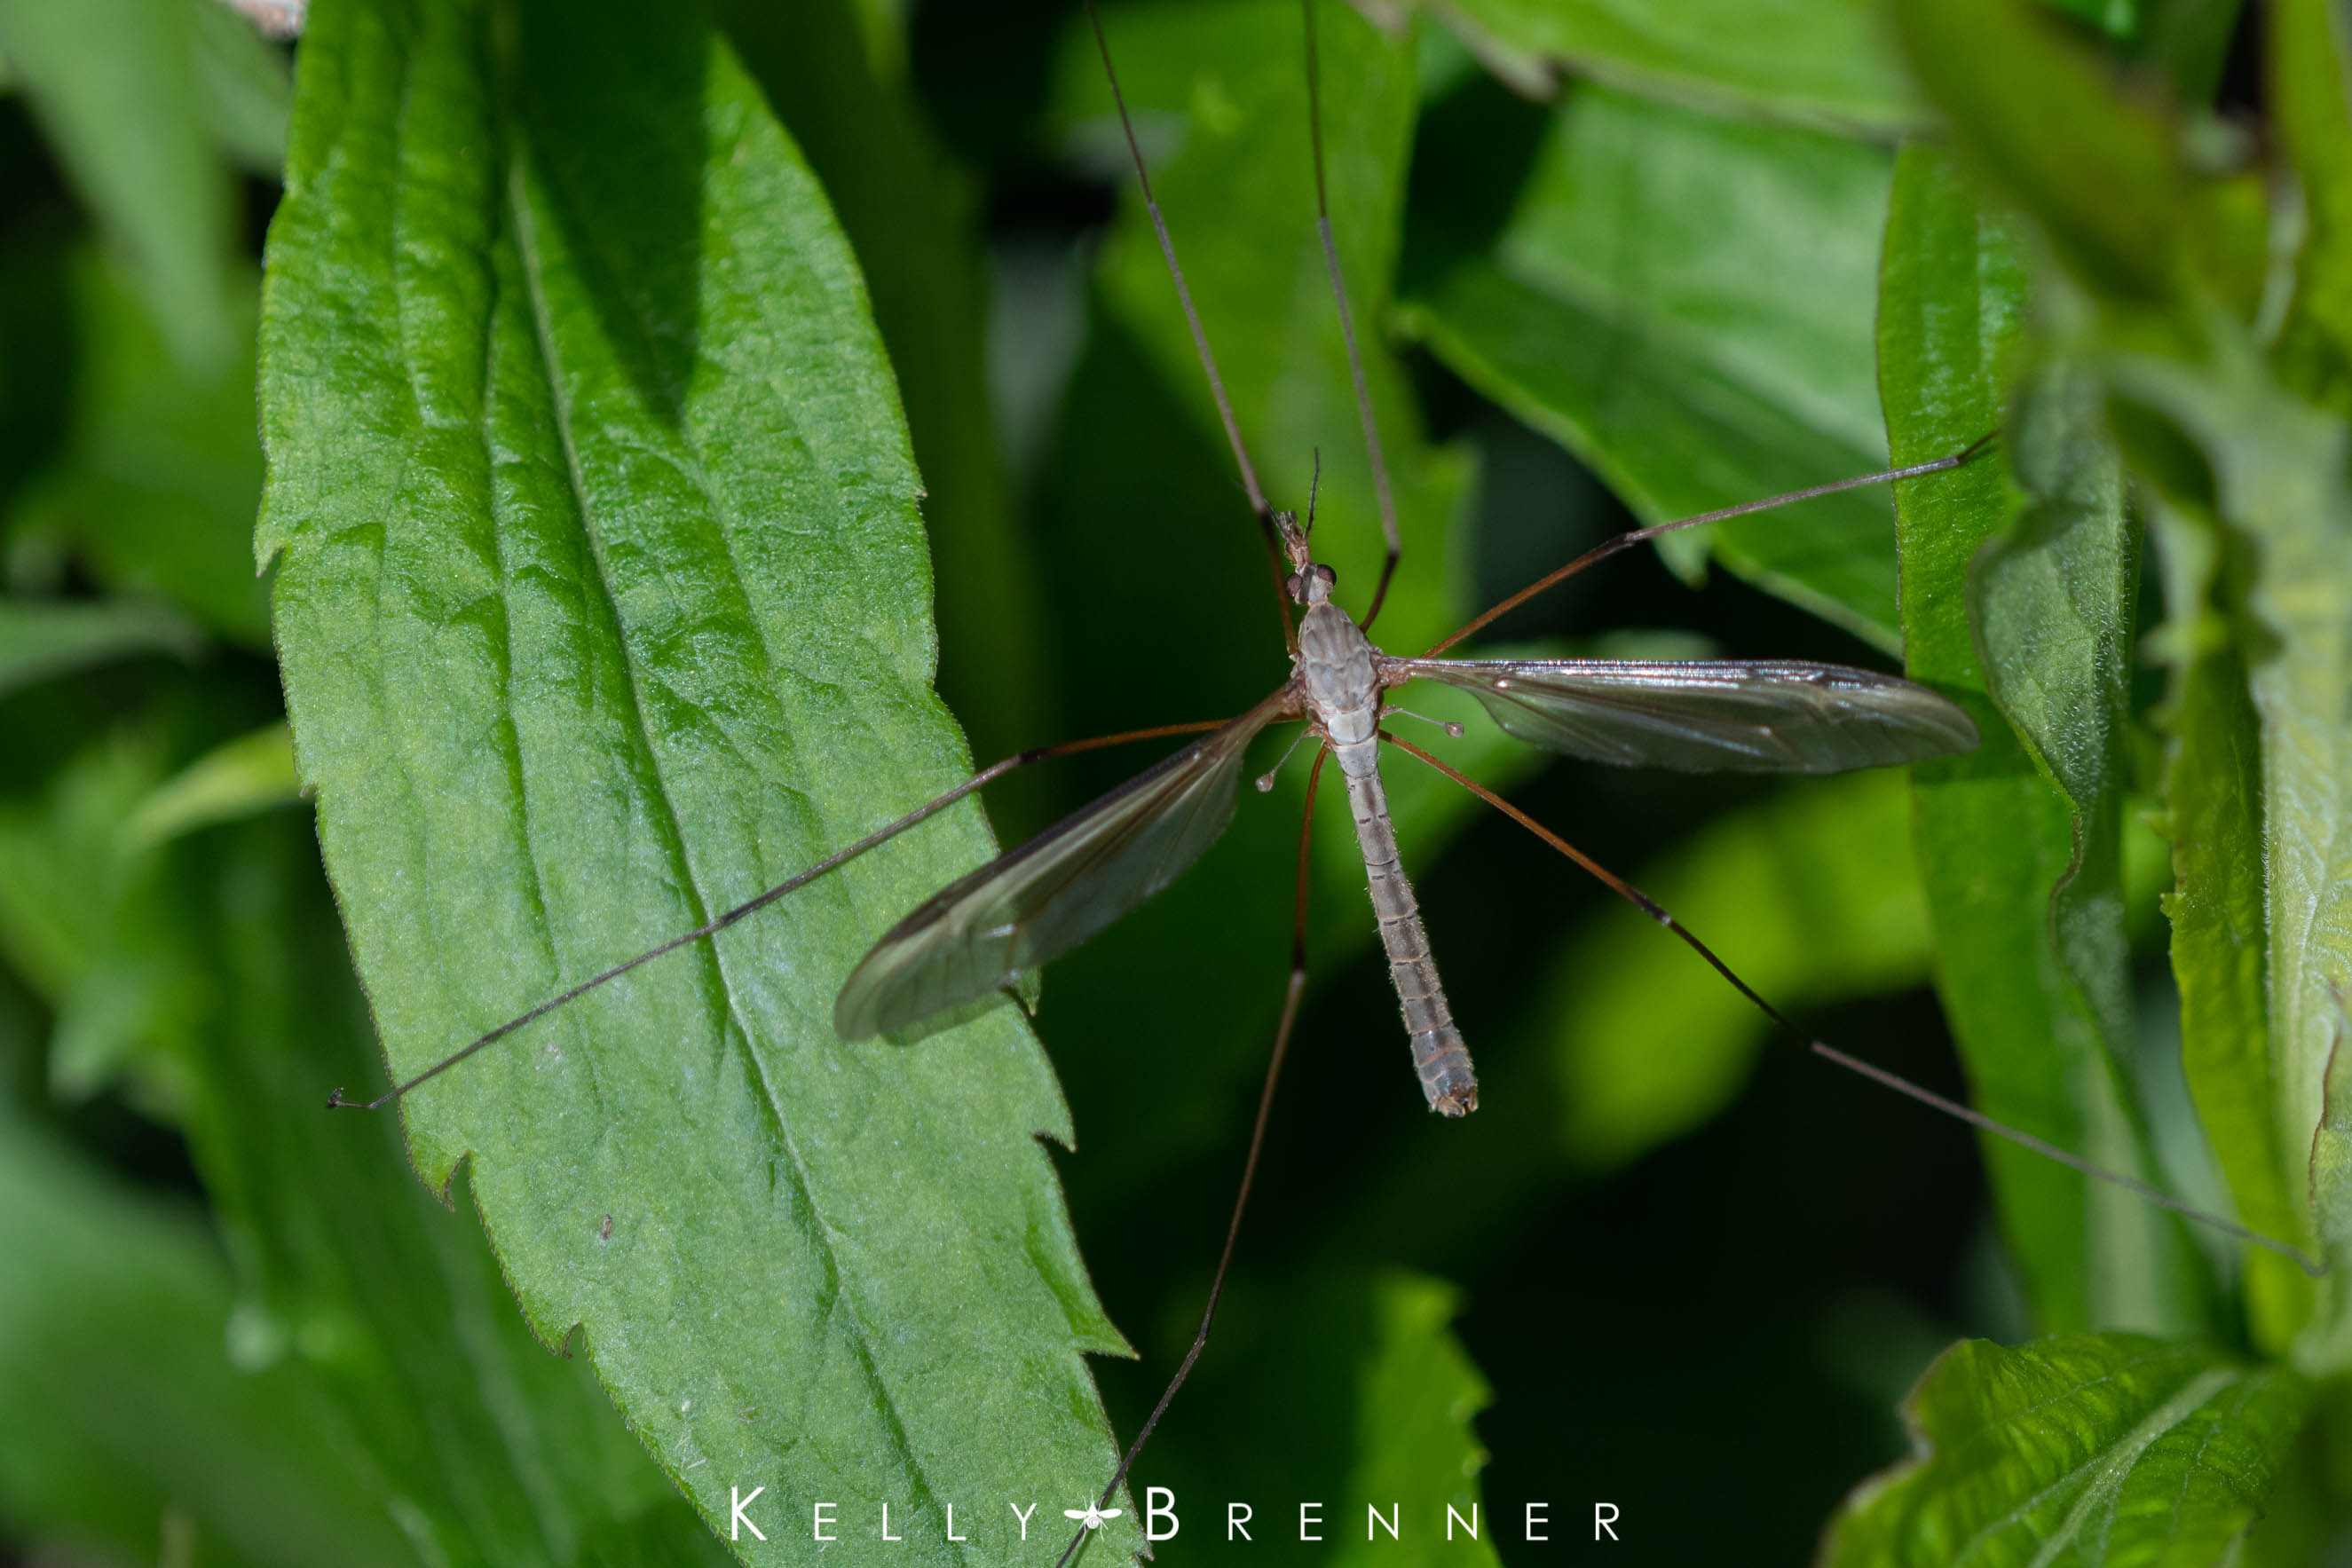 Diary of an Urban Wild Garden: Crane Fly Frenzy